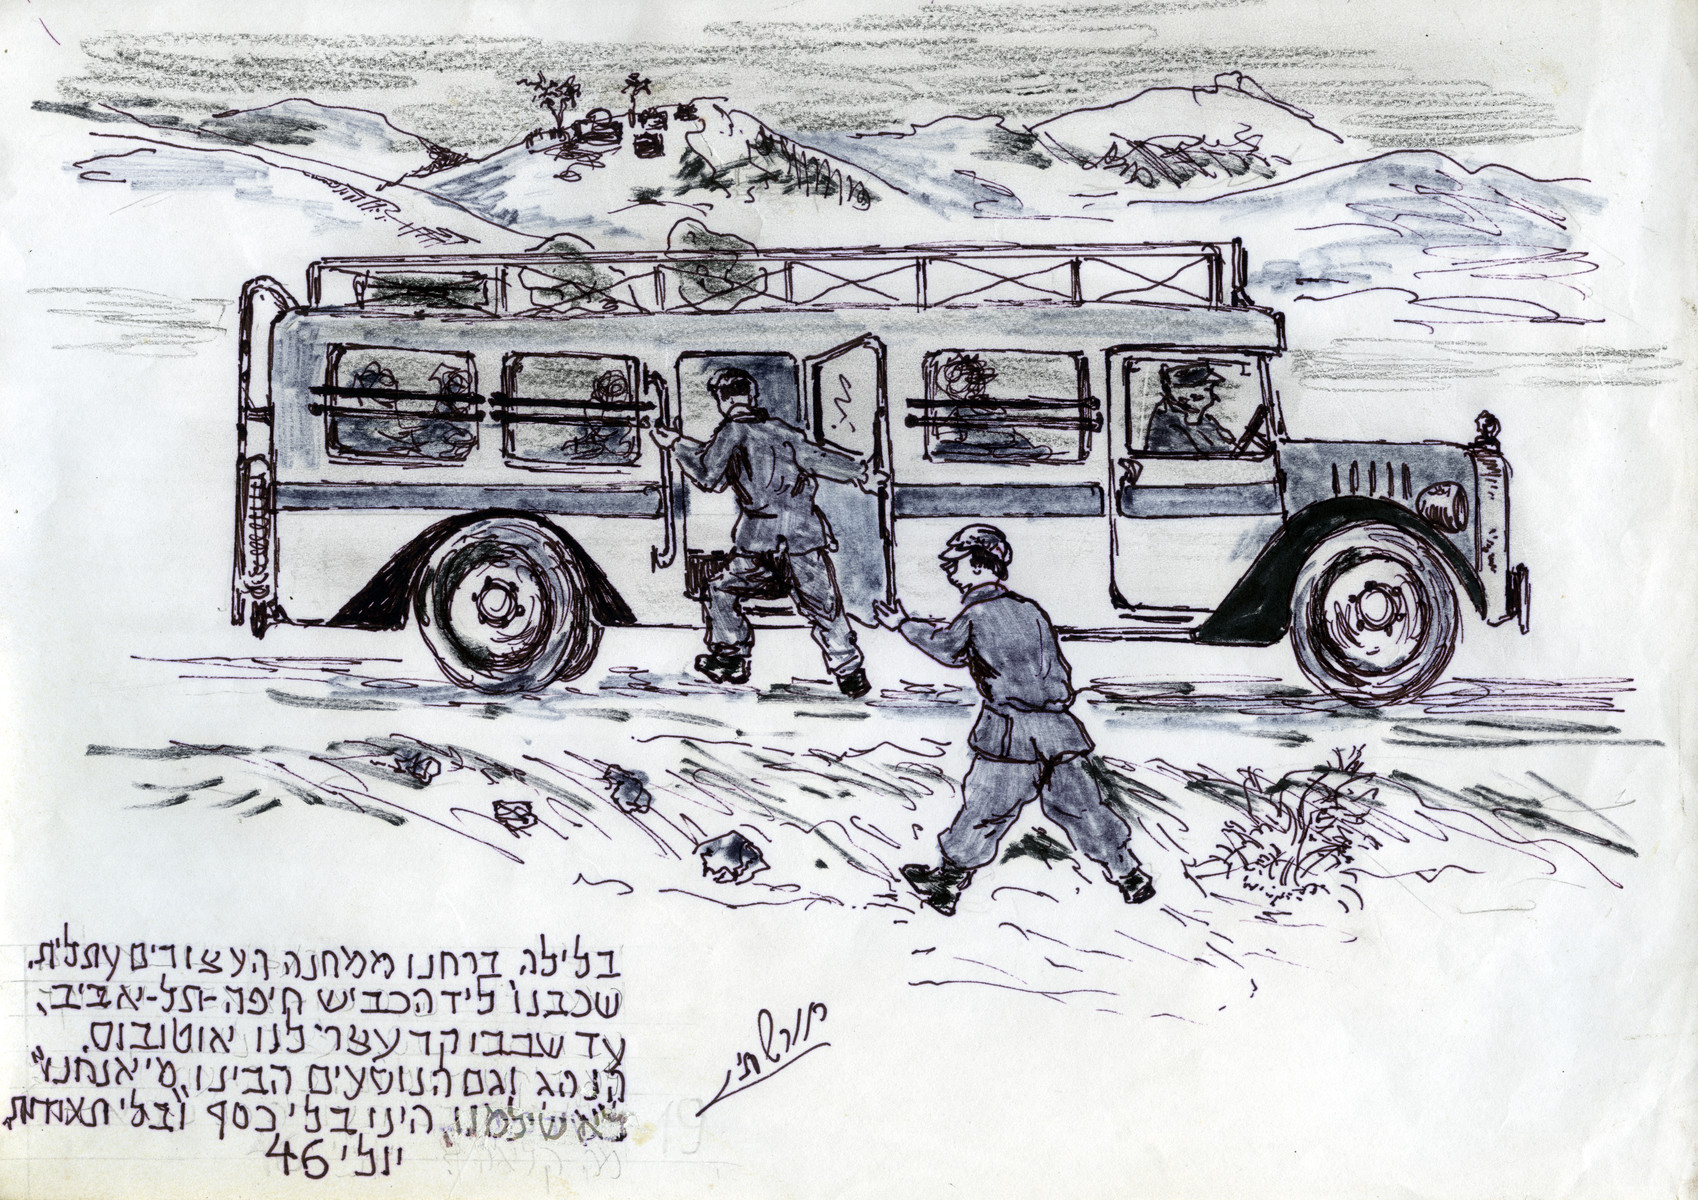 Page of a pictoral memoir drawn by the donor documenting his experiences after the Holocaust.  The drawing depicts the artist during his first month in Palestine without any money.  The kiosk owner took pity and gave him a soda for free.